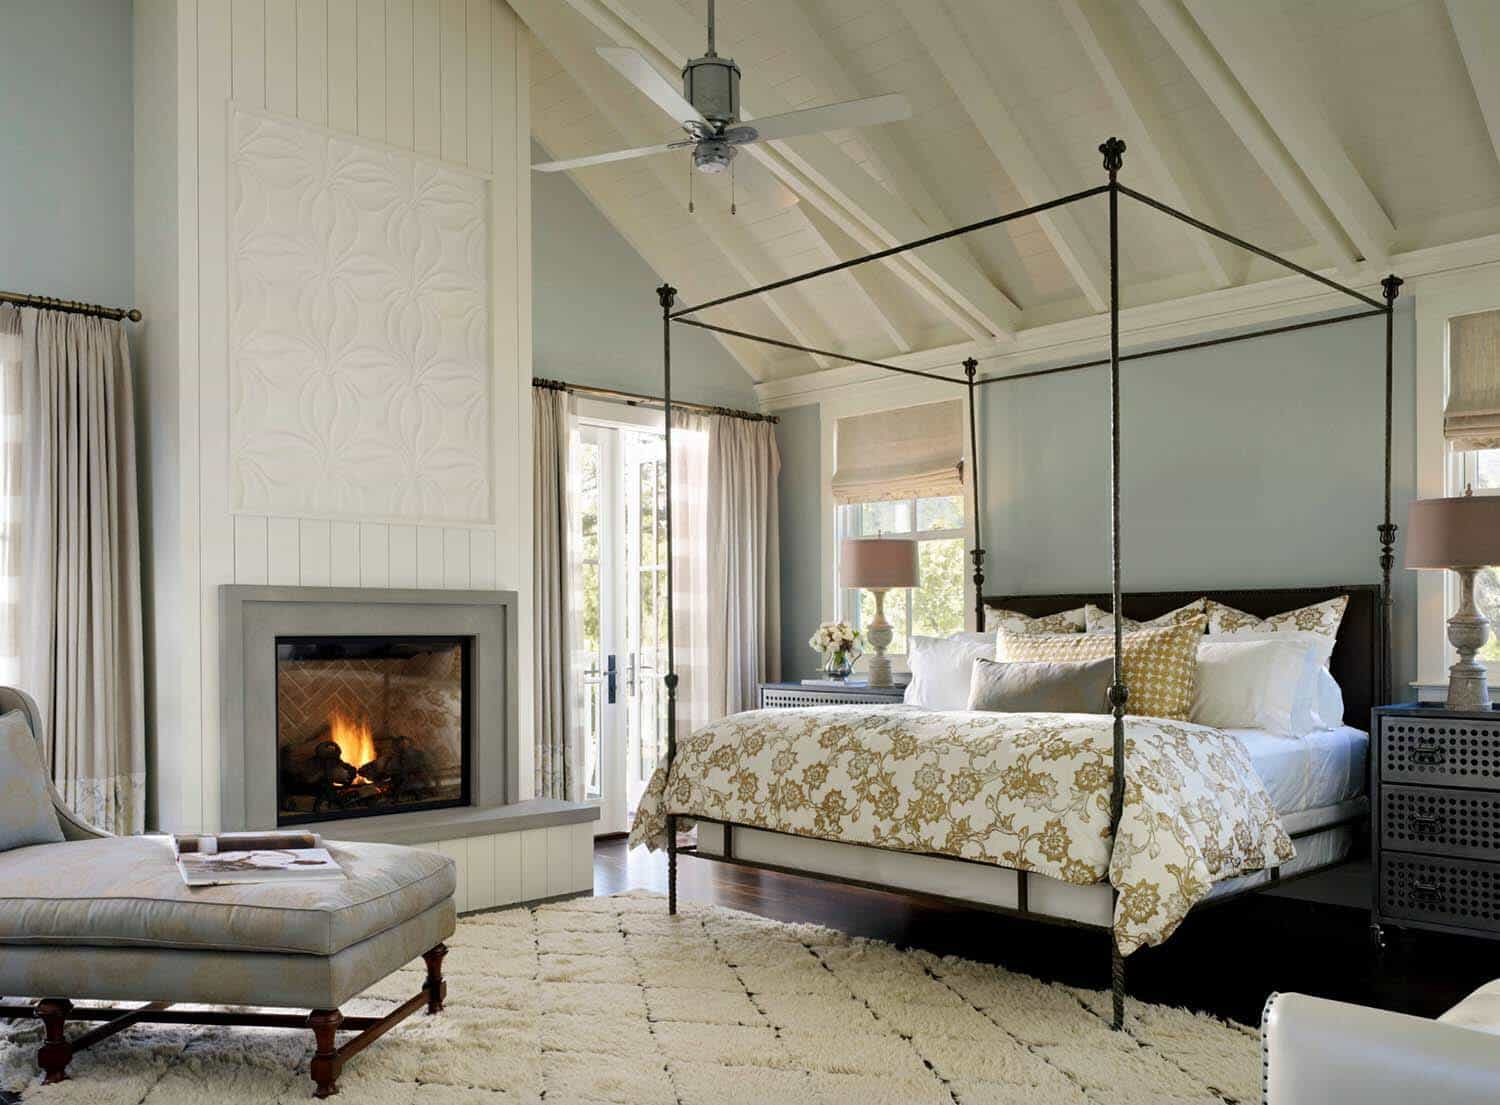 25 Absolutely Breathtaking Farmhouse Style Bedroom Ideas That Inspire